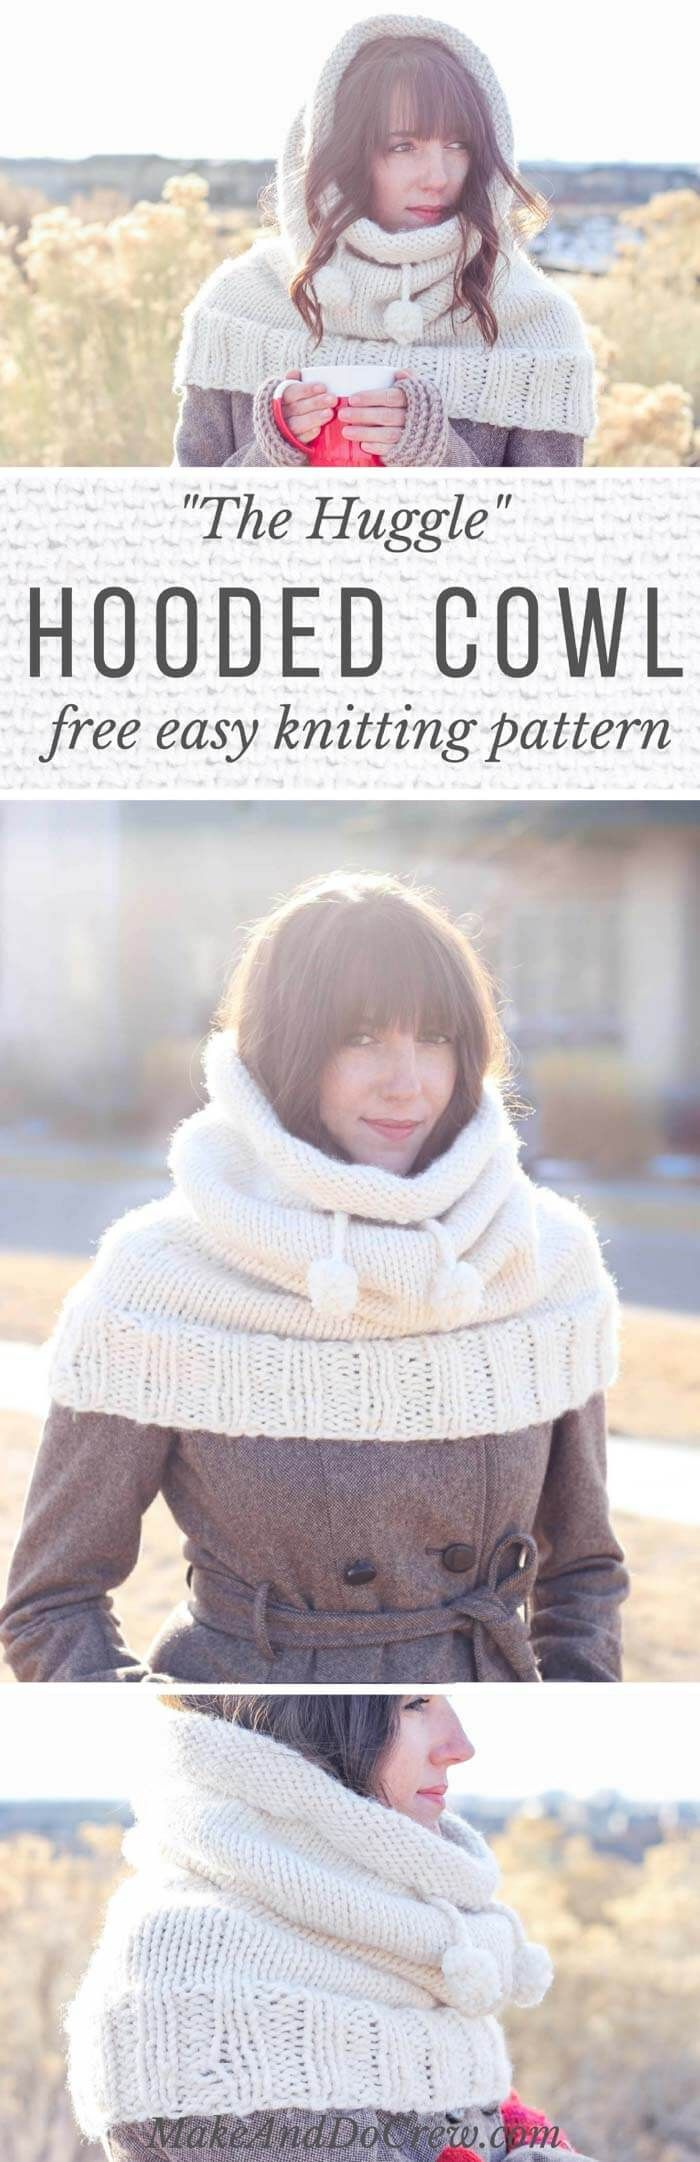 The Huggle\' Hooded Cowl – Free Knitting Pattern | Hooded cowl ...